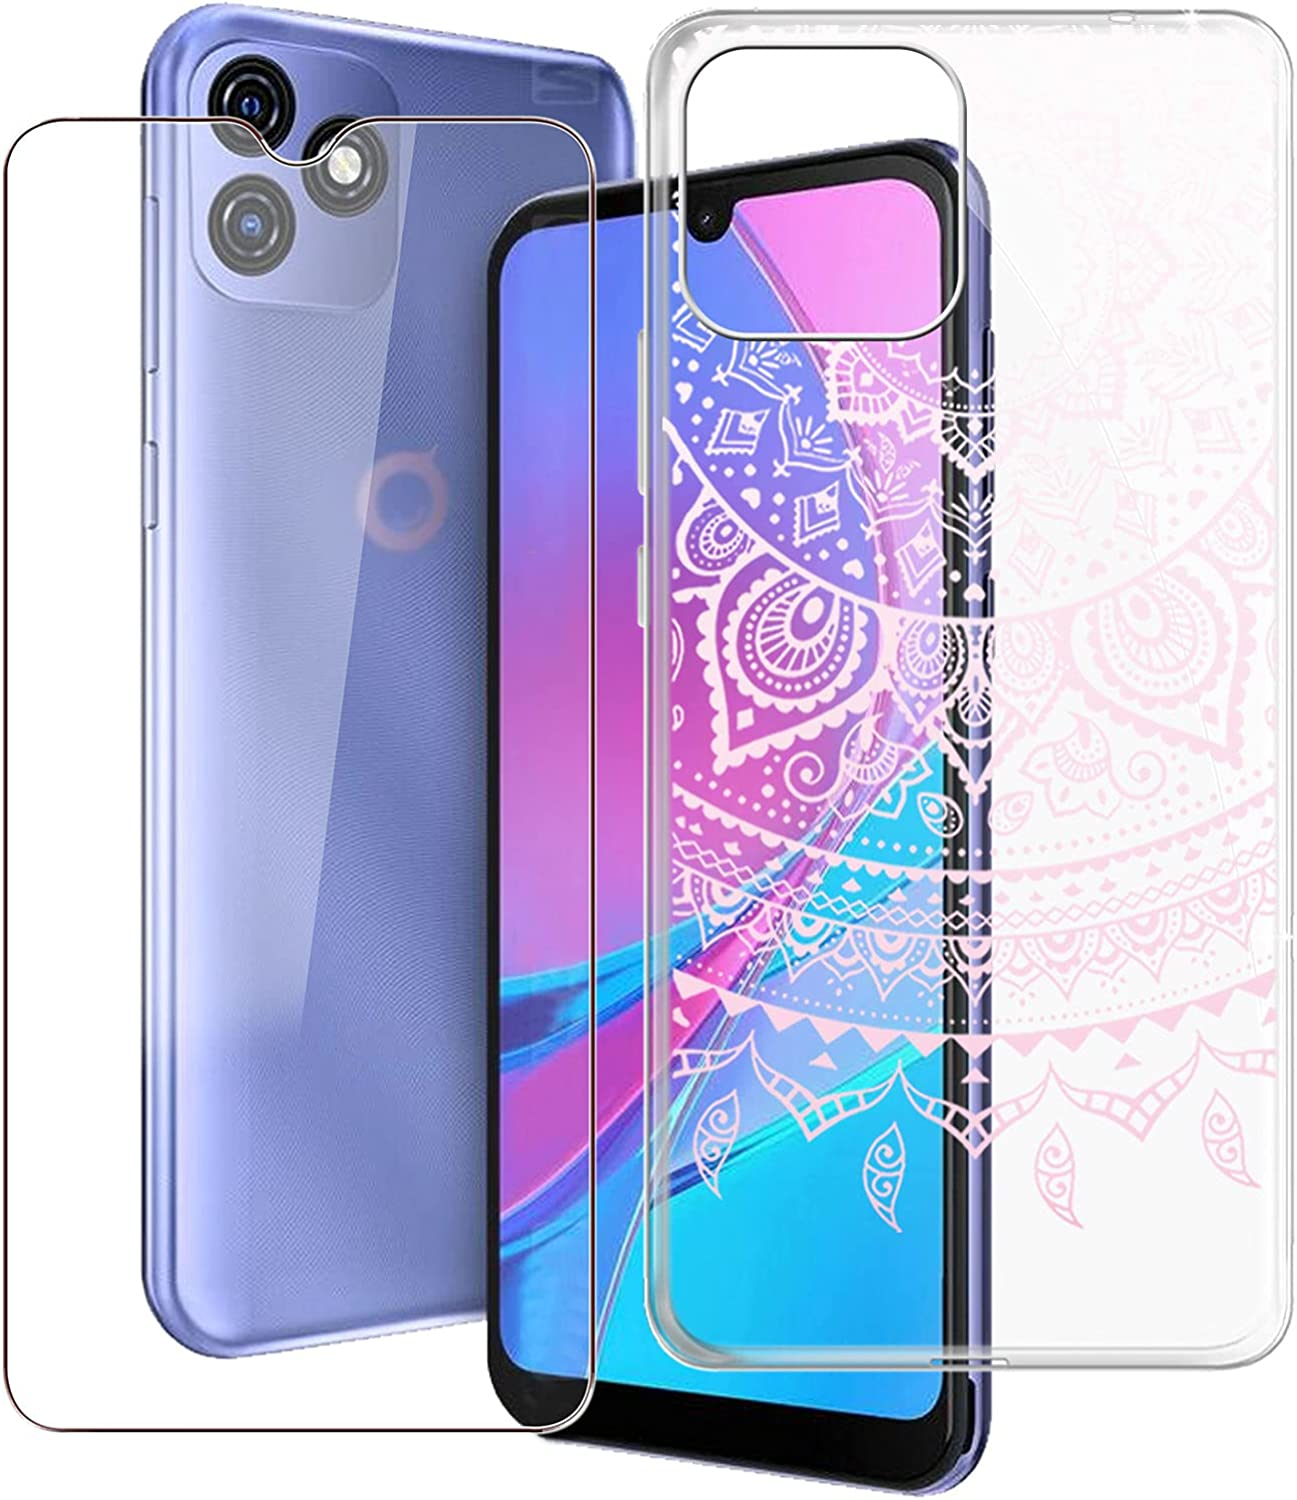 Our shop OFFers the best service Phone Case for Blackview Oscal C20 Max 47% OFF with x Tempered G 1 6.09